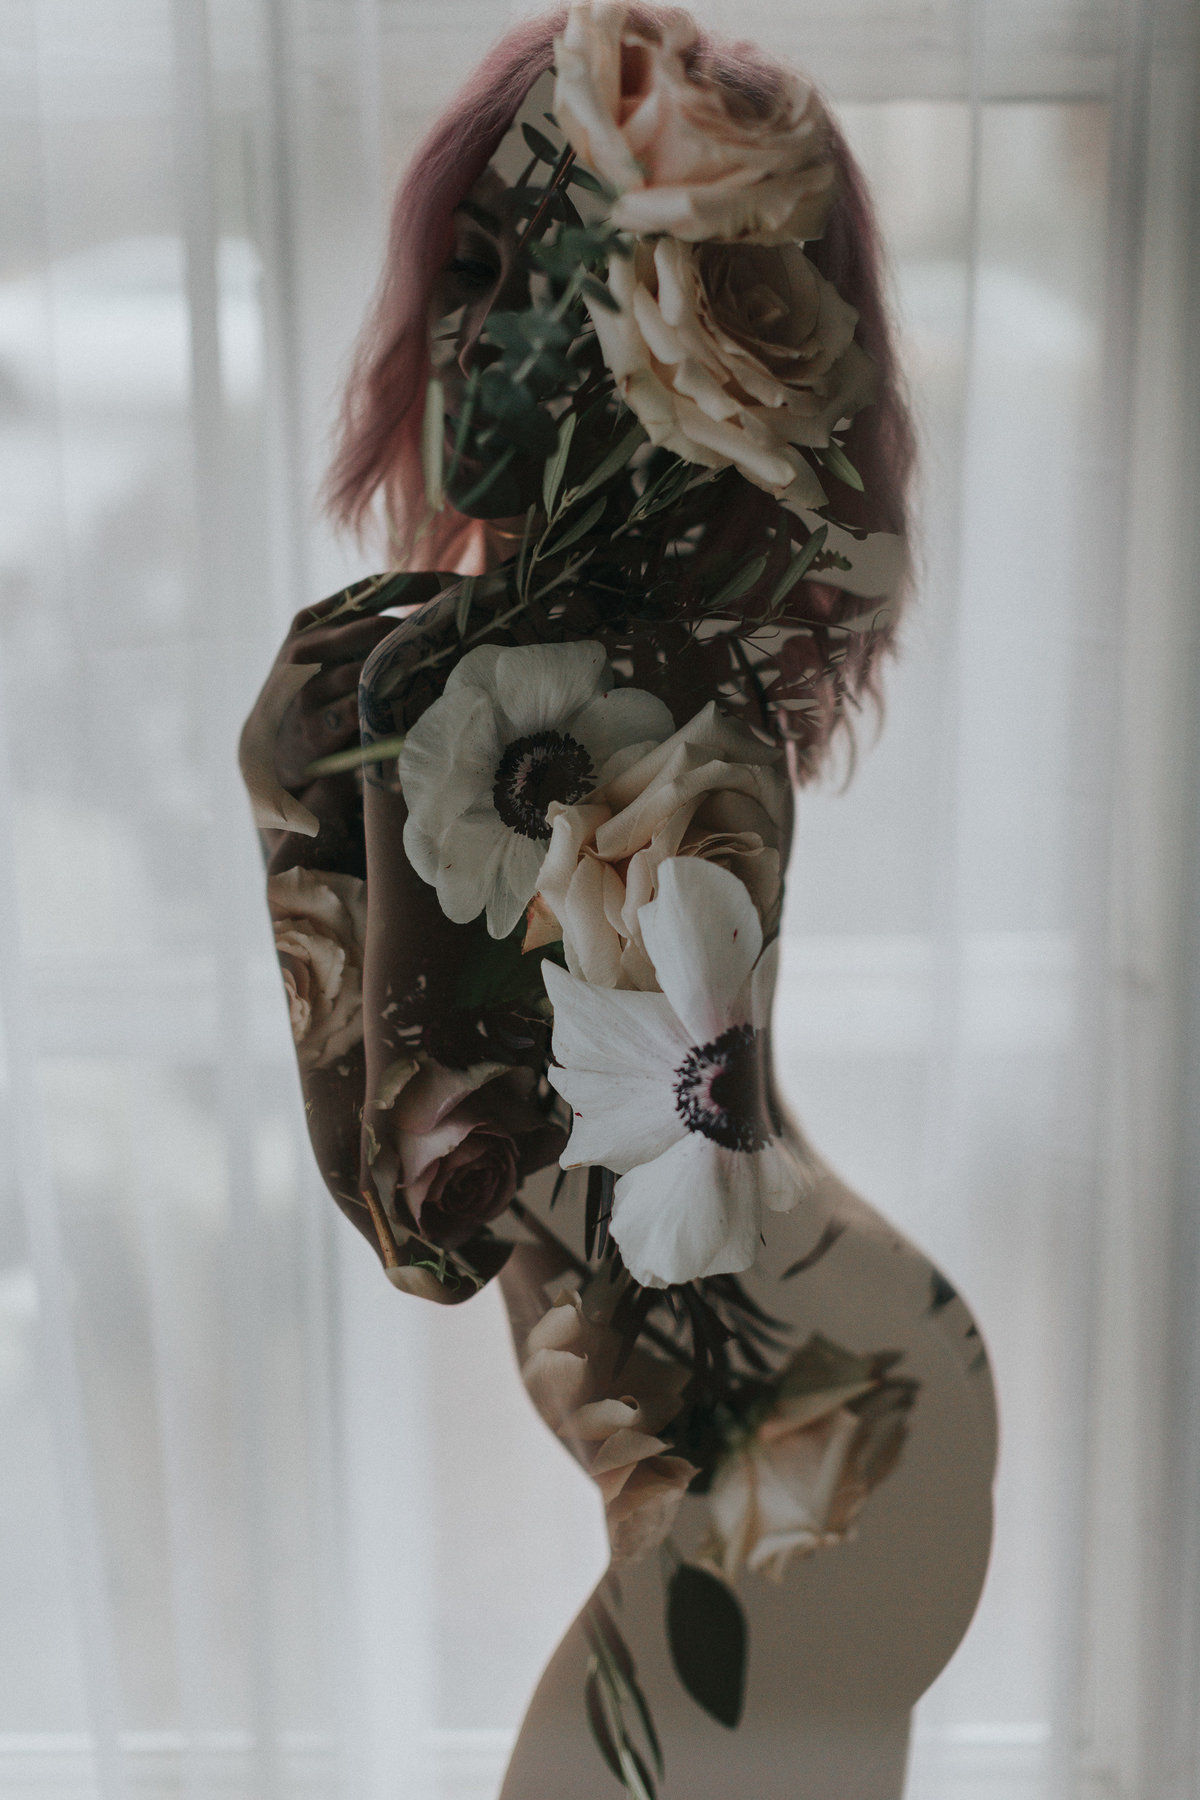 Double exposure floral boudoir pose